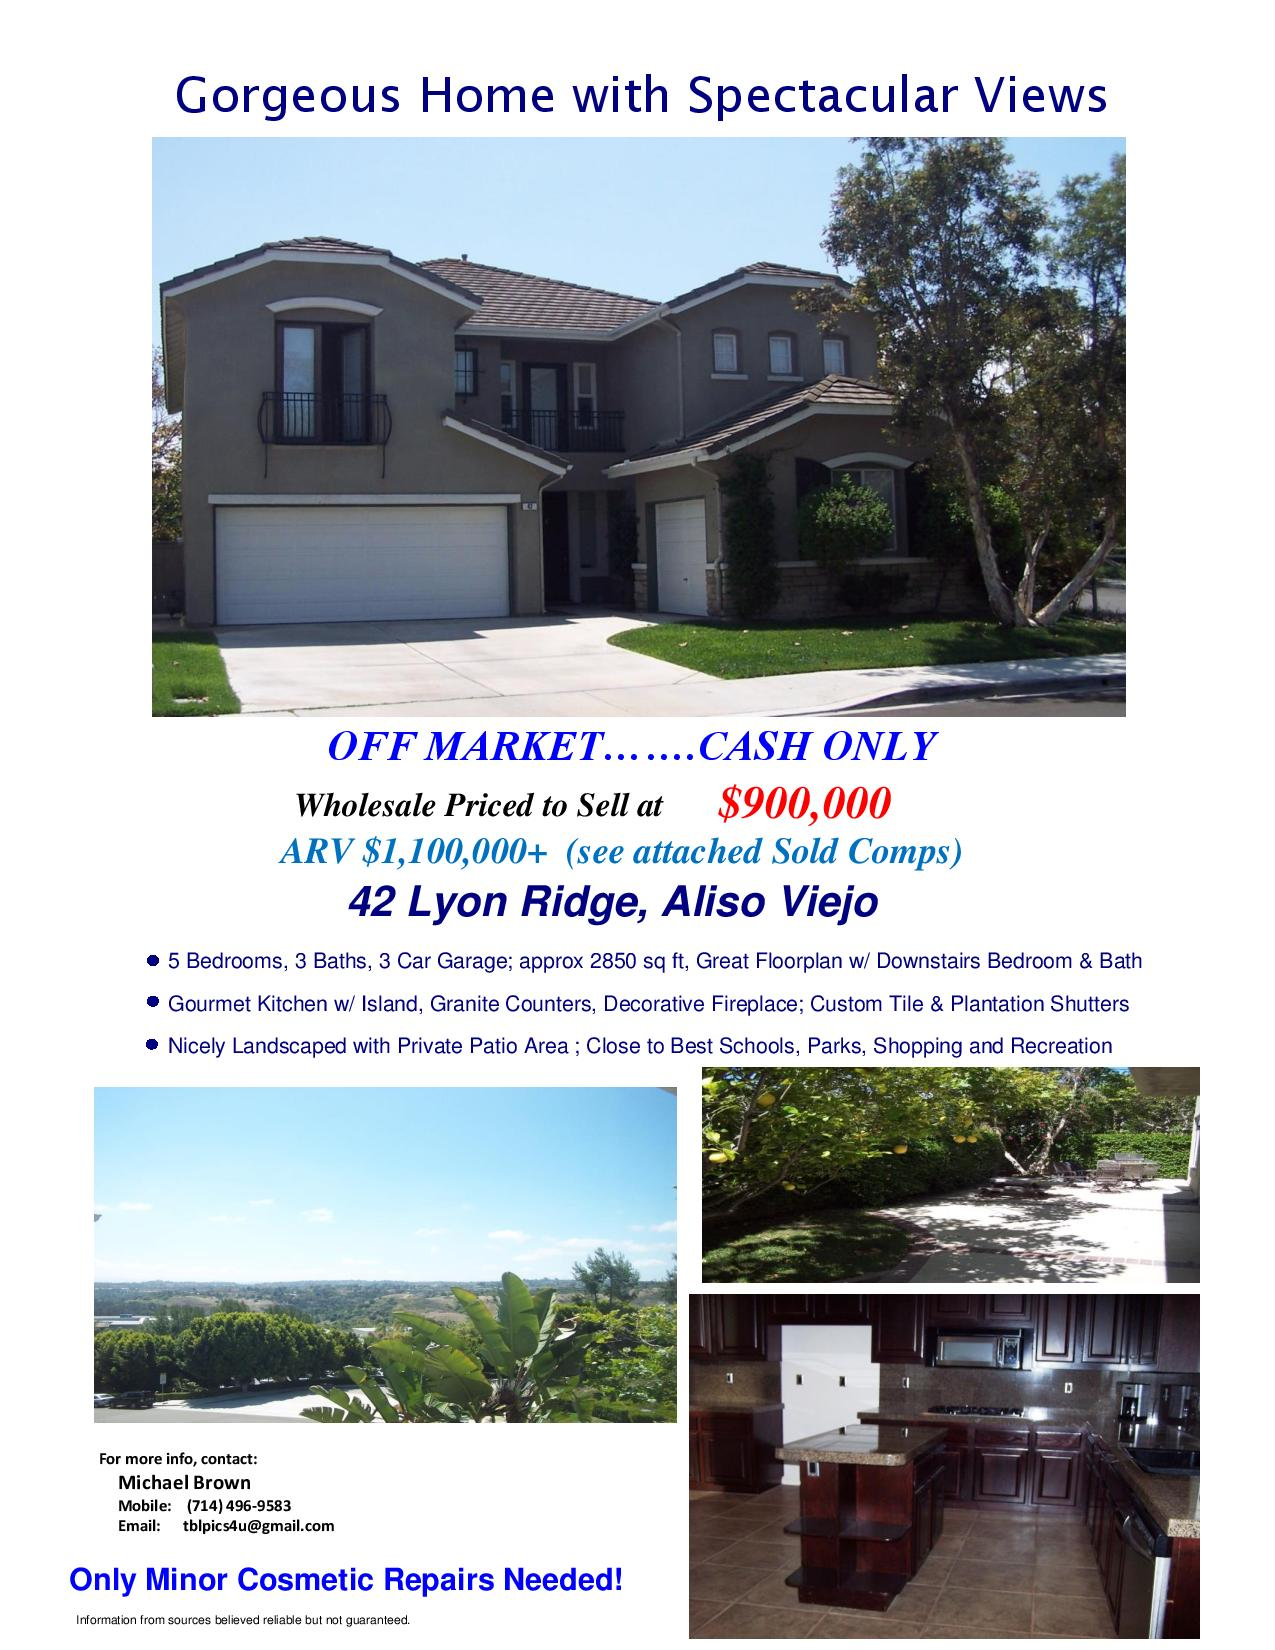 A Gorgeous Off Market Wholesale Opportunity